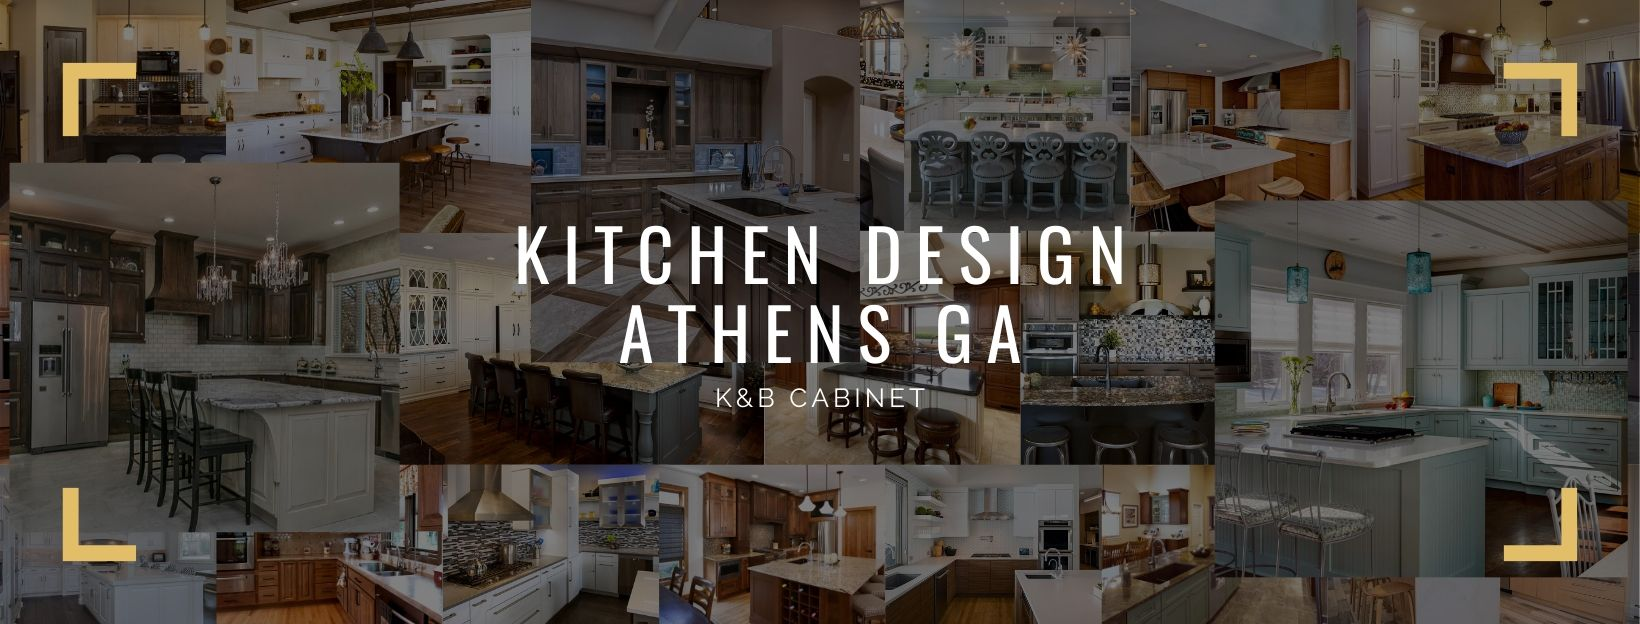 Kitchen Design Athens GA